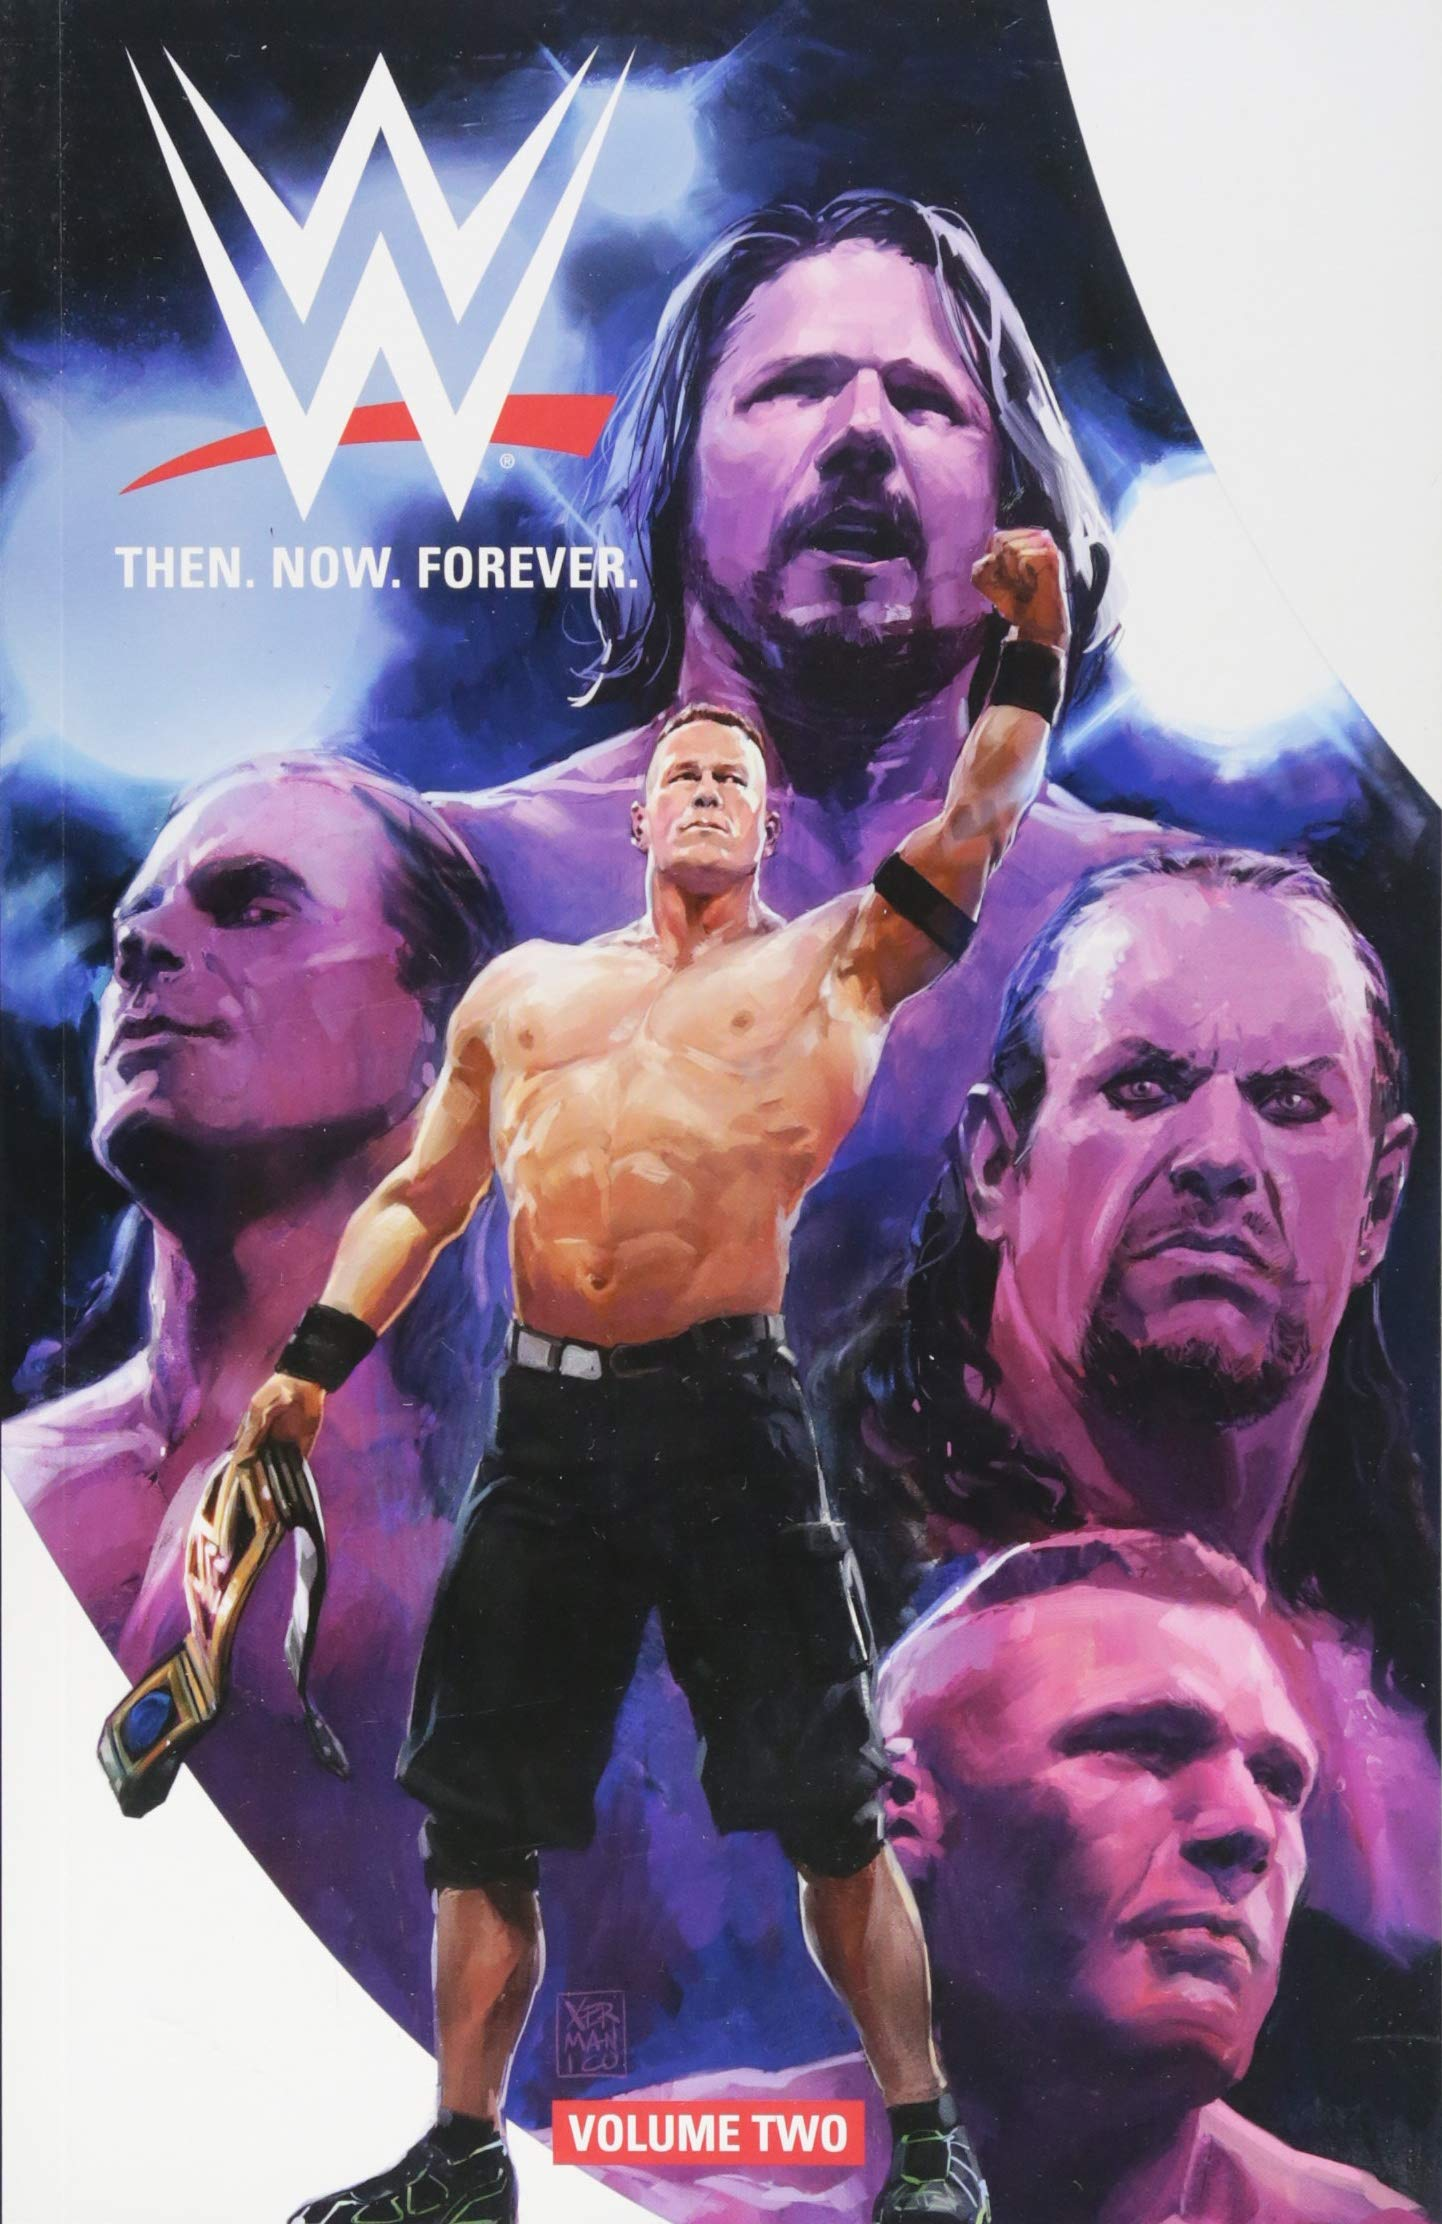 WWE 3 Then Now Forever Vol